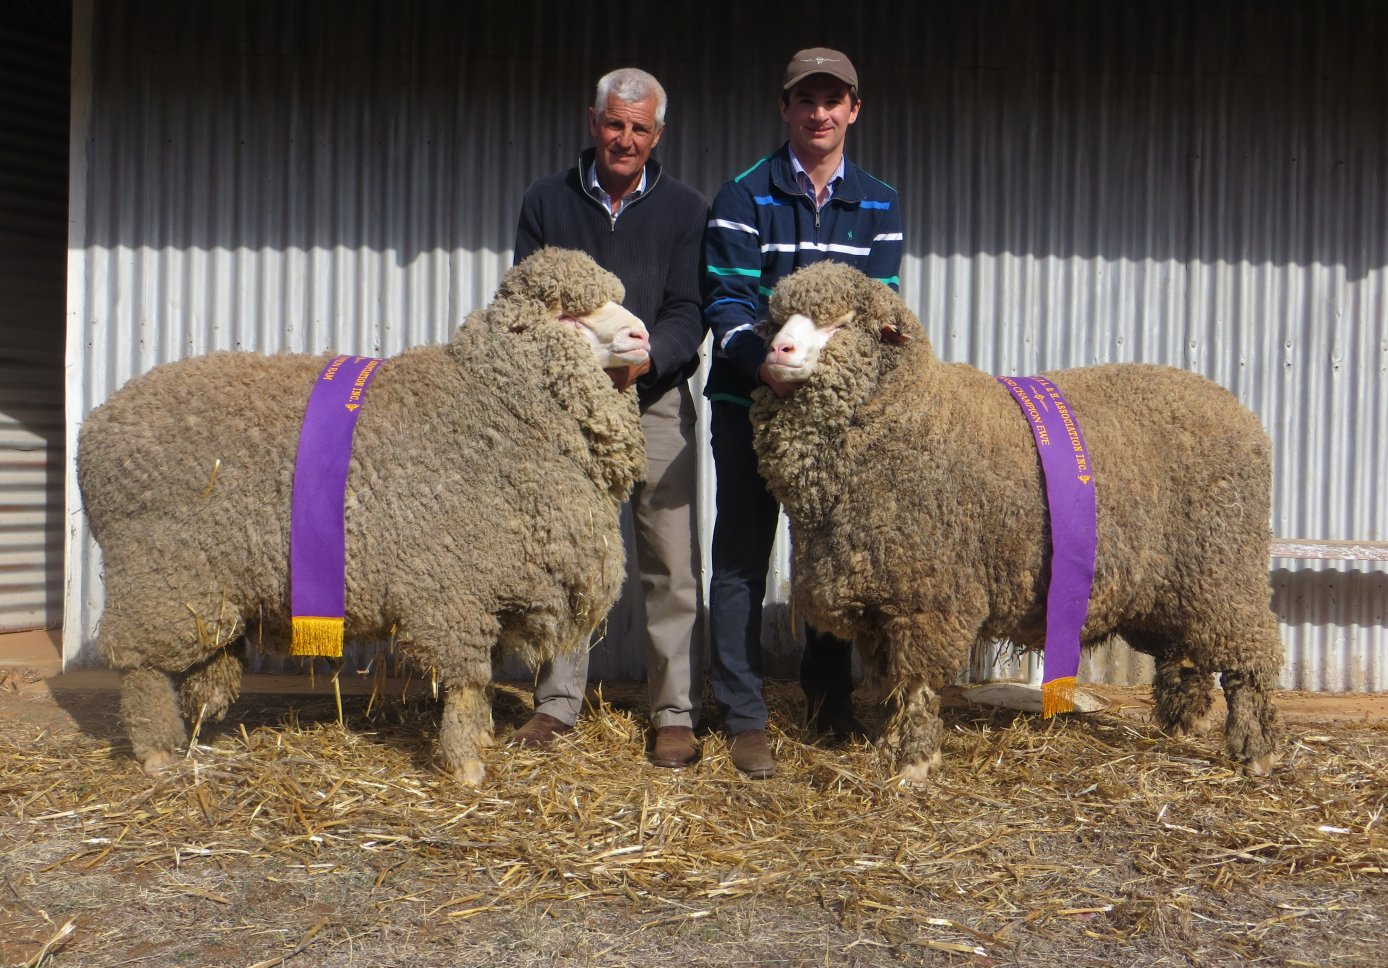 Cameron and Warick with the Grand Champion Ewe and Ram of the 2018 Peak Hill Show.